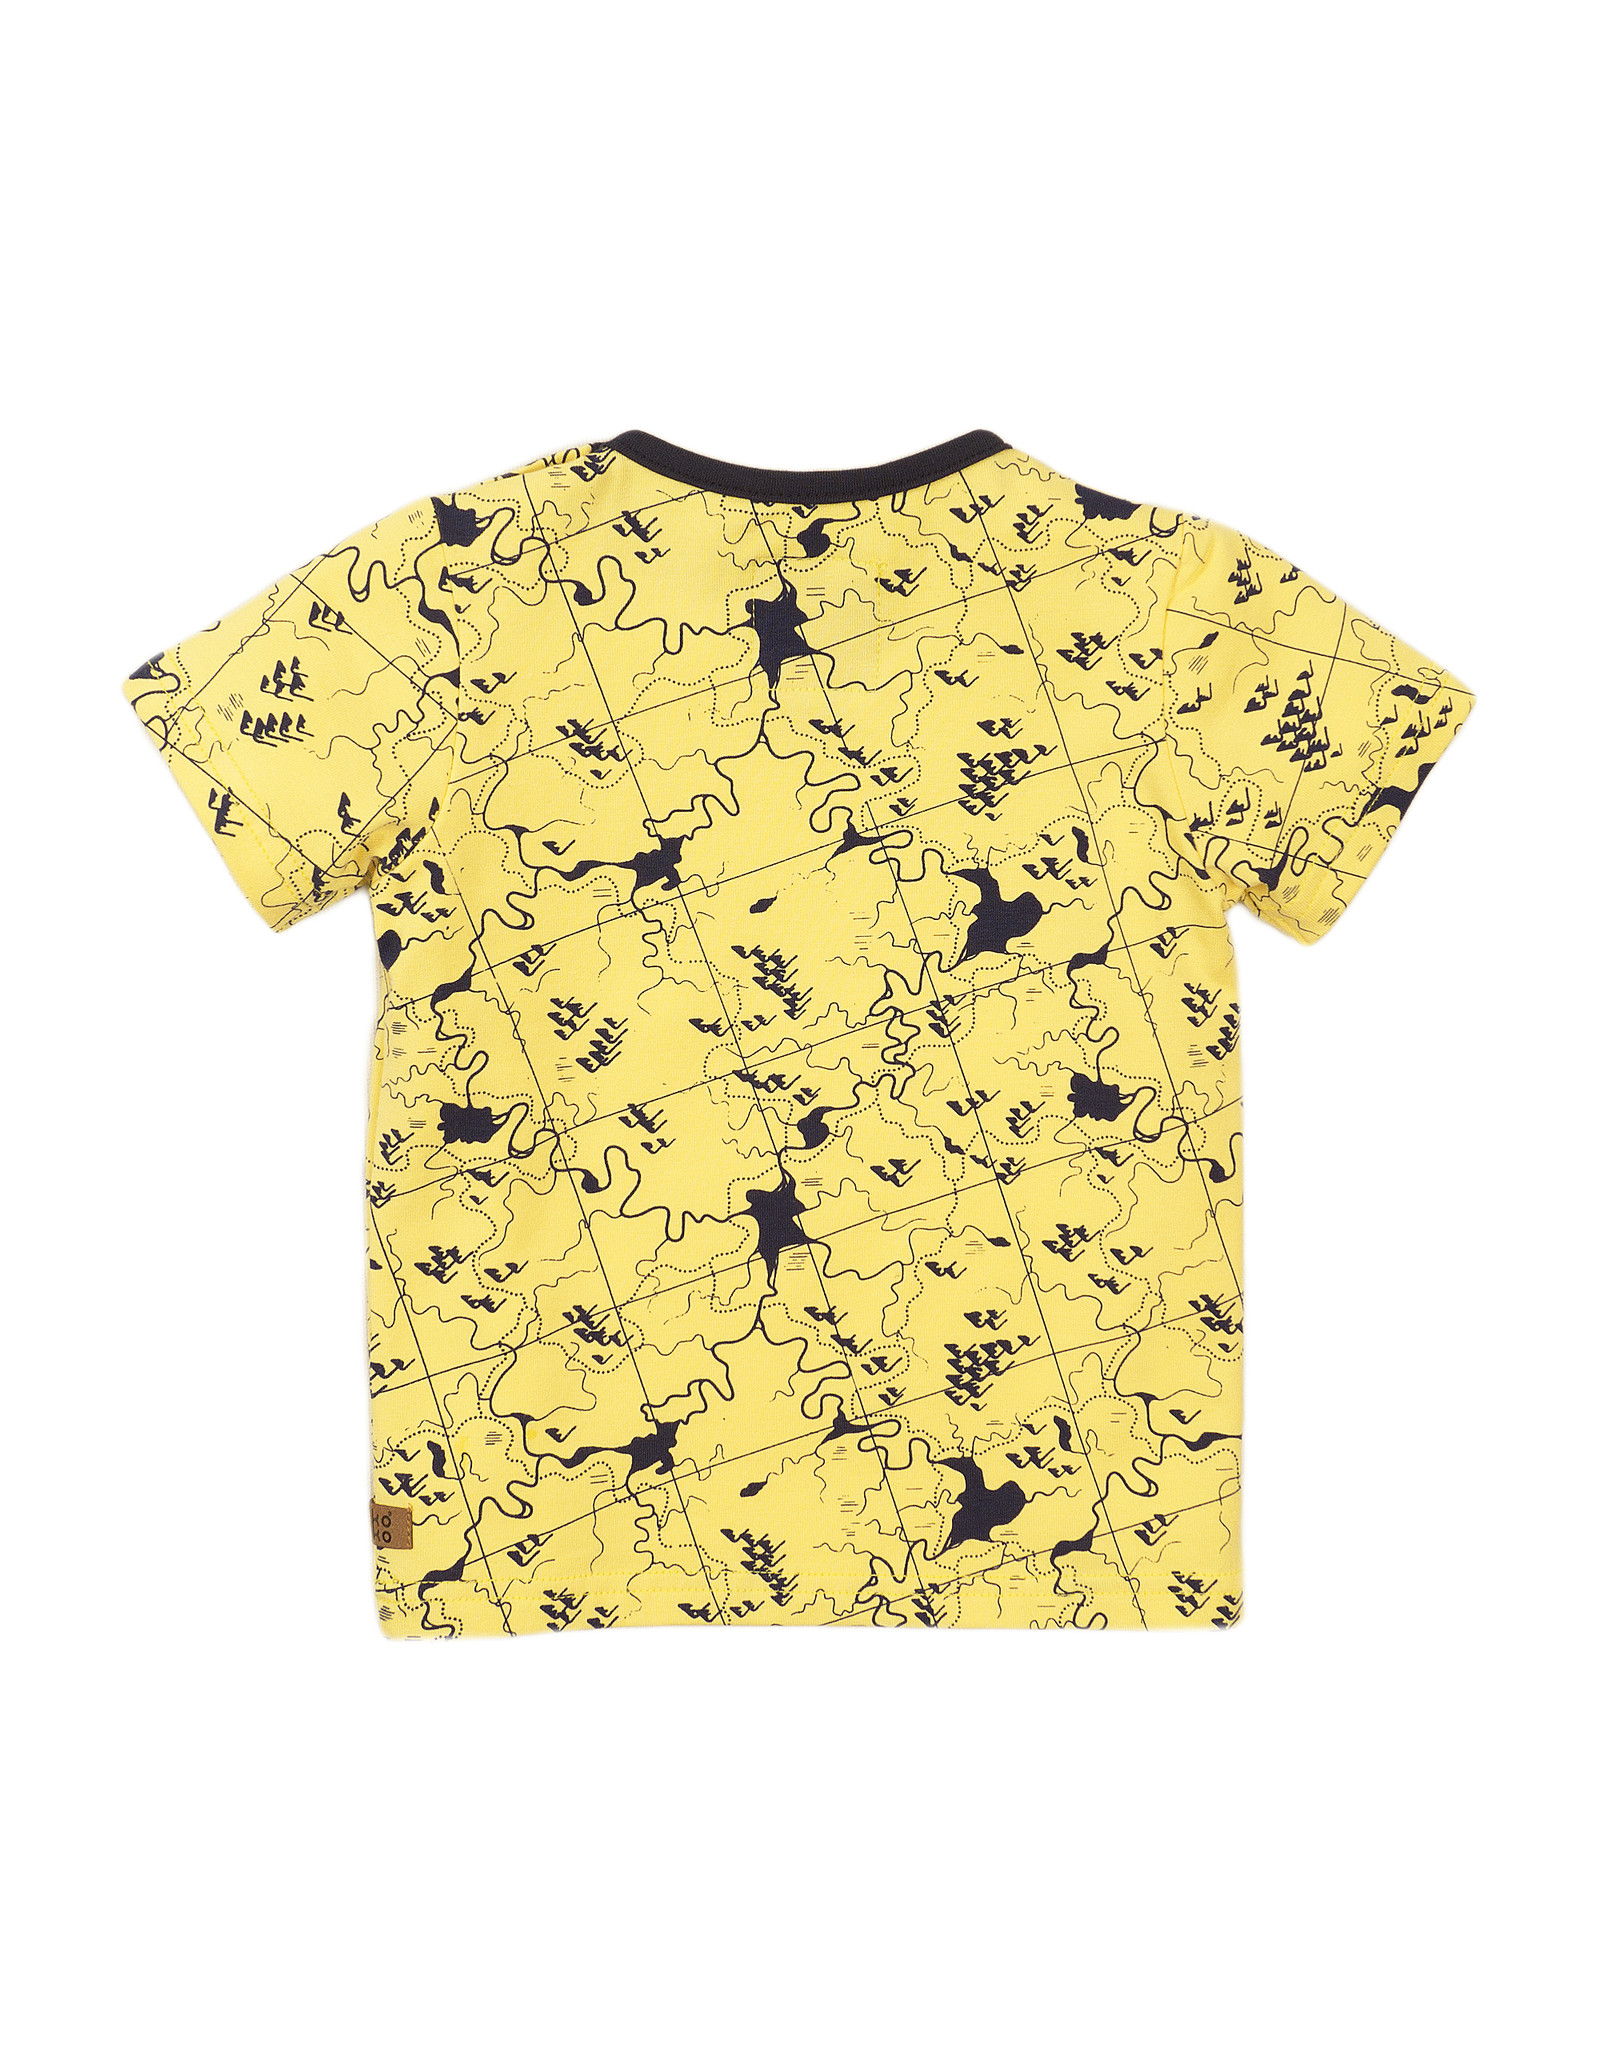 Koko Noko T-shirt shs, Light yellow, SS21